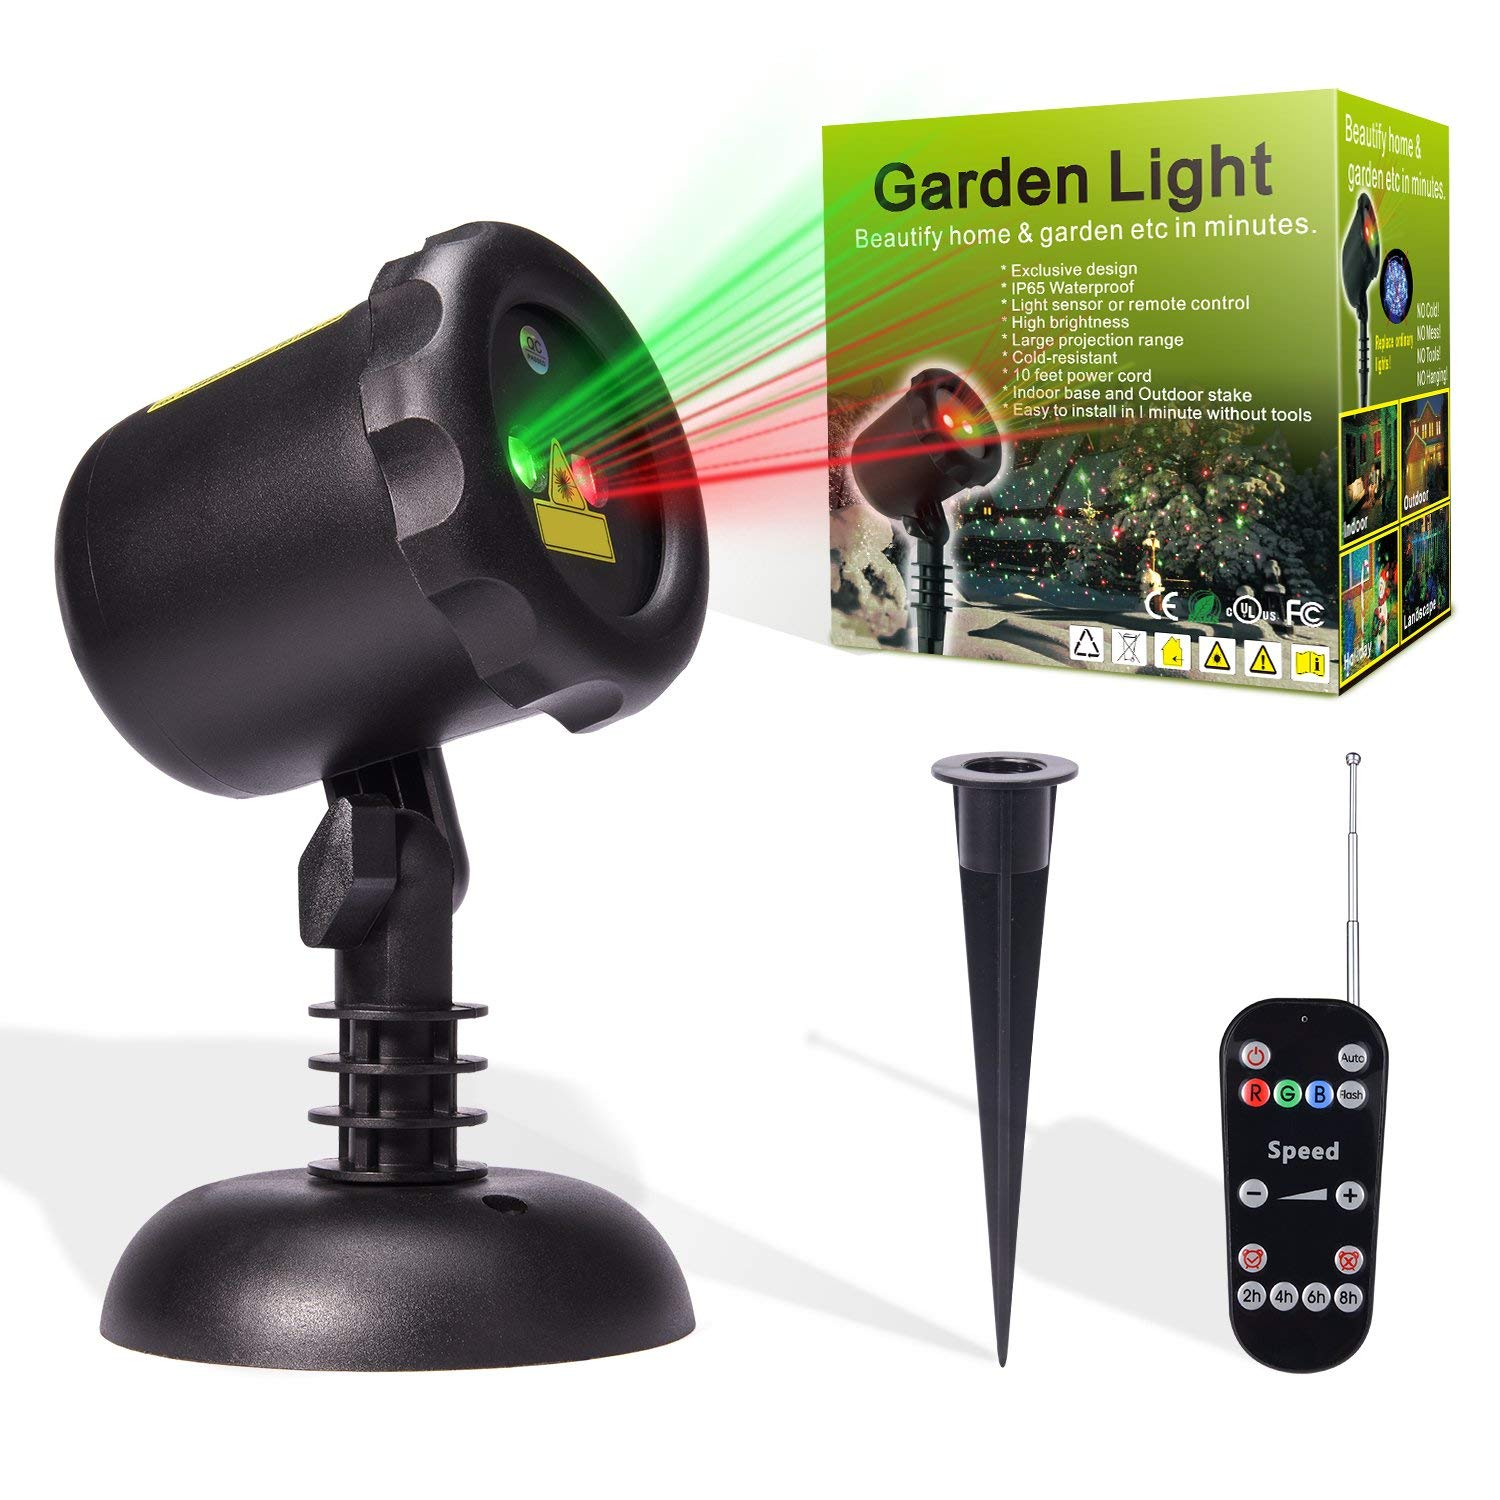 Best outdoor laser Christmas light projector - Guideliner Pro